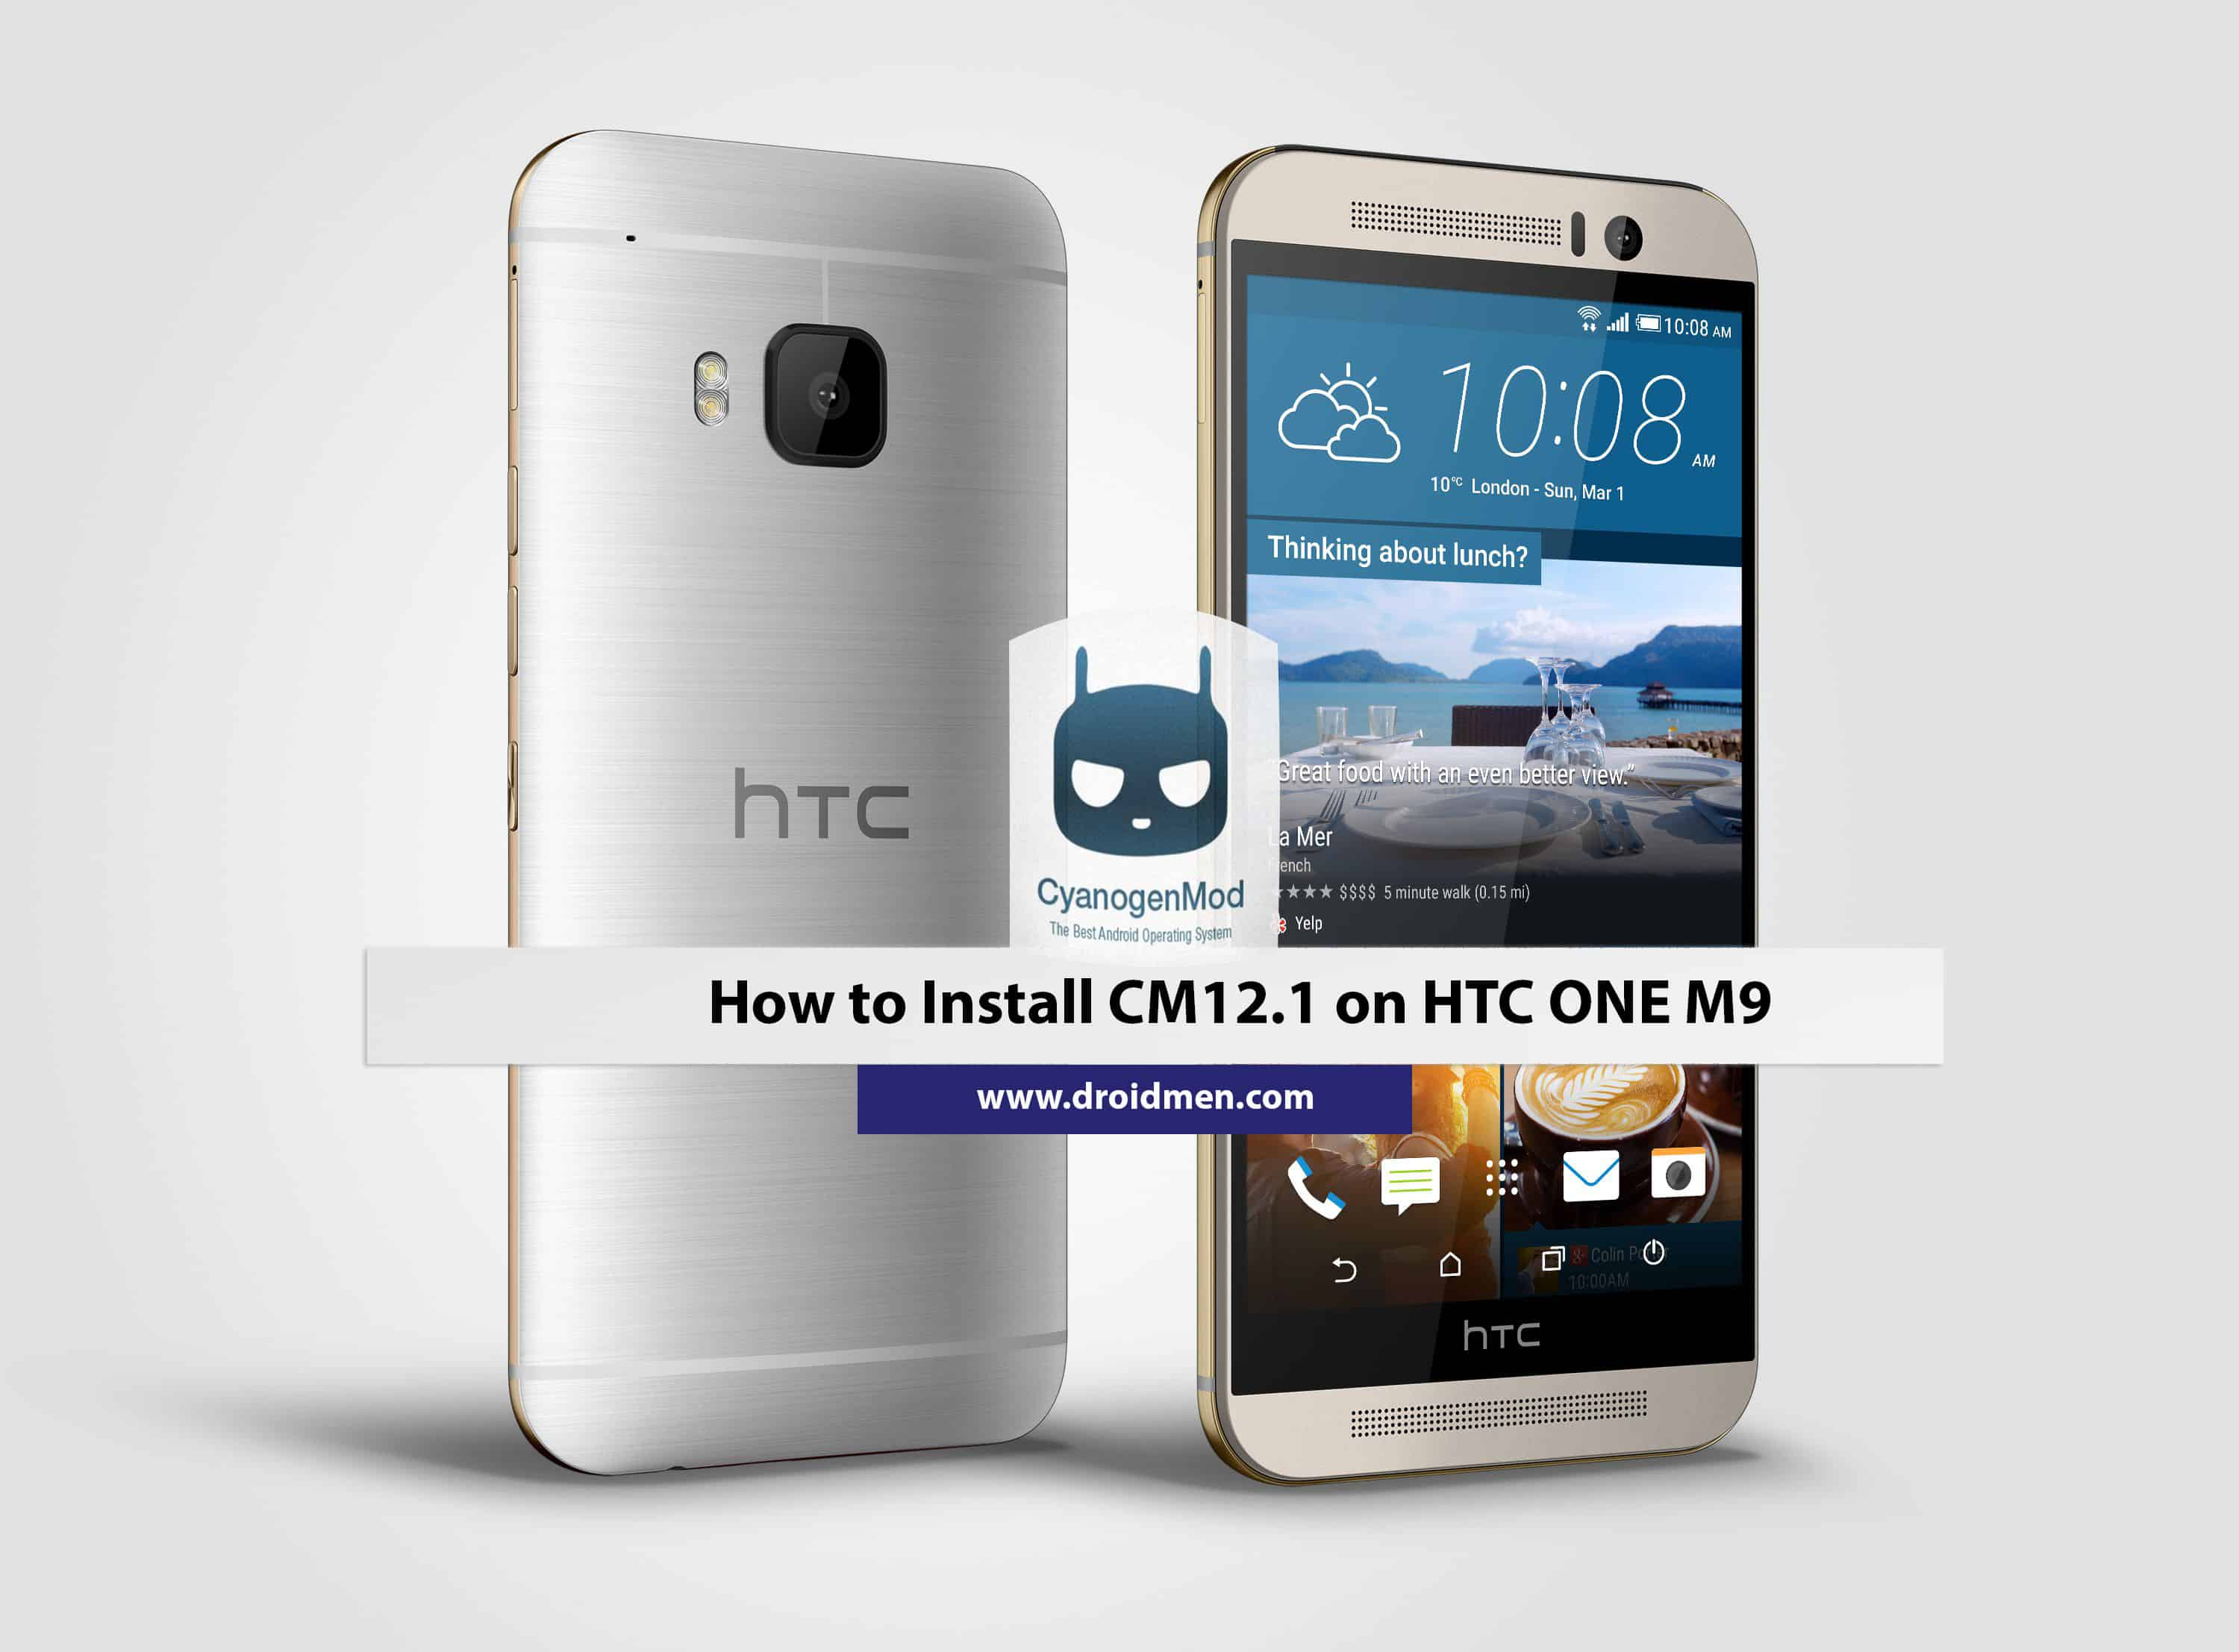 How to Install CM12.1 on HTC One M9 1